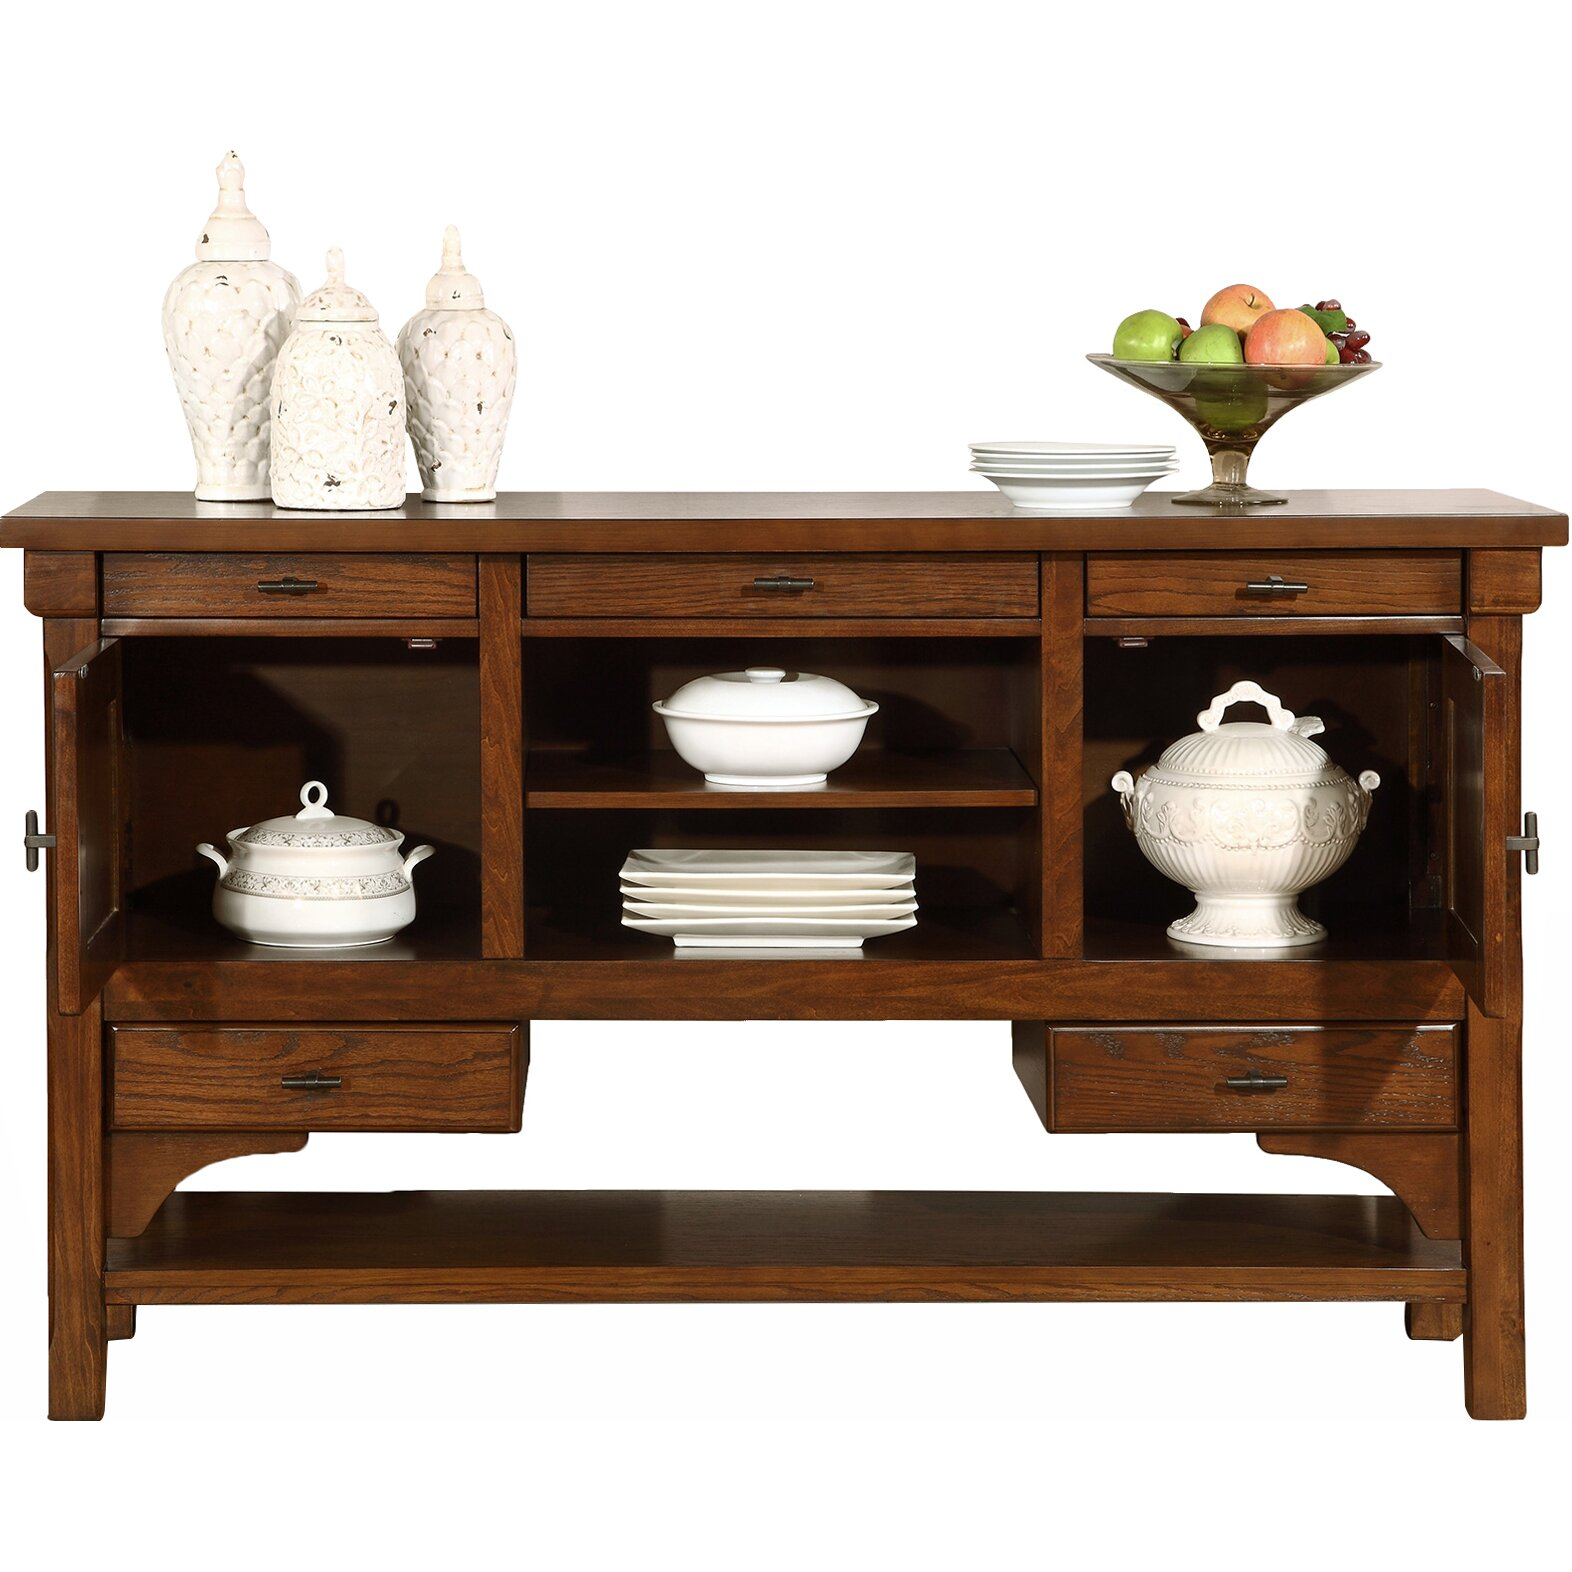 Wildon Home Server Wayfair